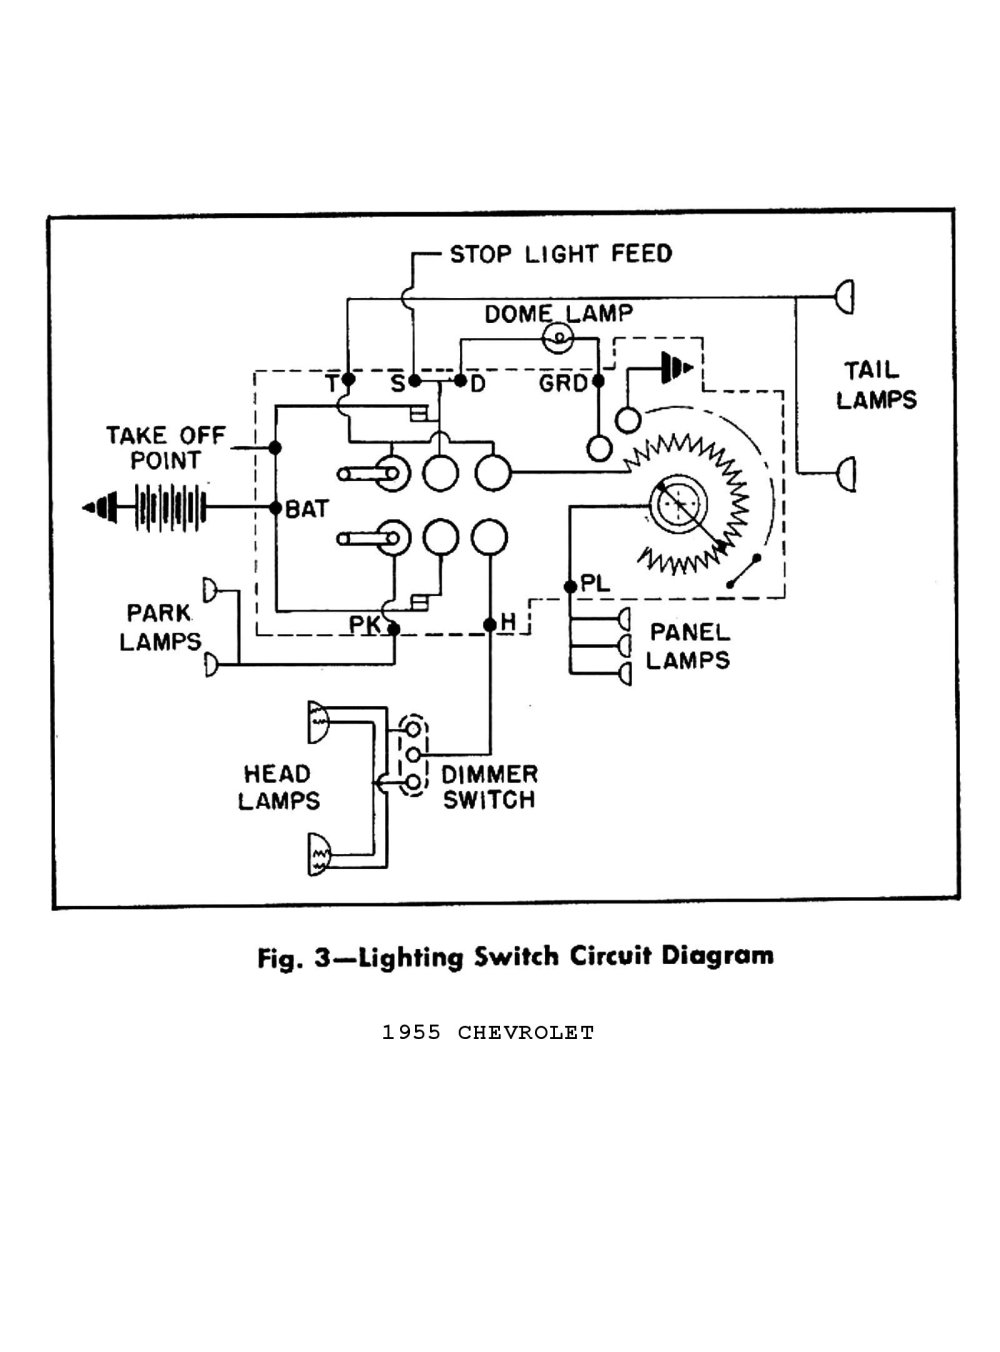 medium resolution of 1956 gm column wiring wiring diagram1976 chevrolet steering column wiring wiring diagramsford to gm column wiring